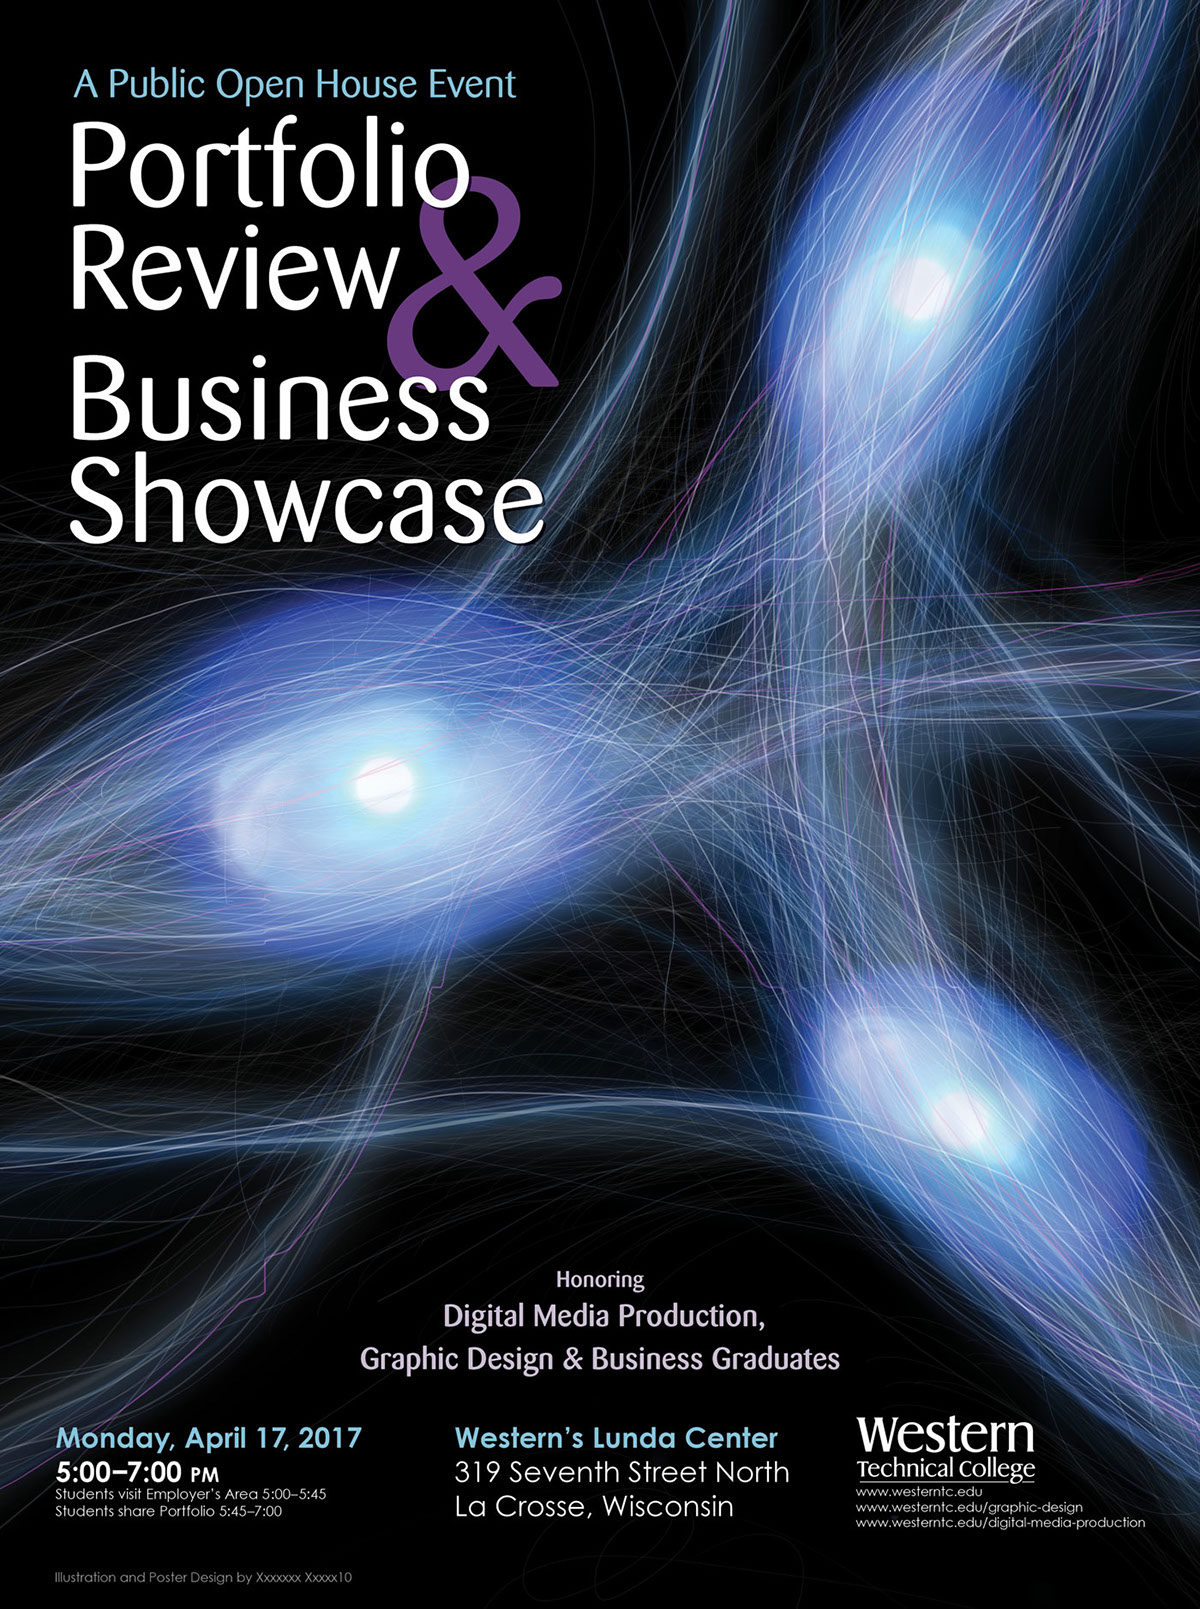 Posters on behance the portfolio and business review poster objective was to invite employers and the community to the event i chose to use the imagery of synapses to reflect thecheapjerseys Choice Image